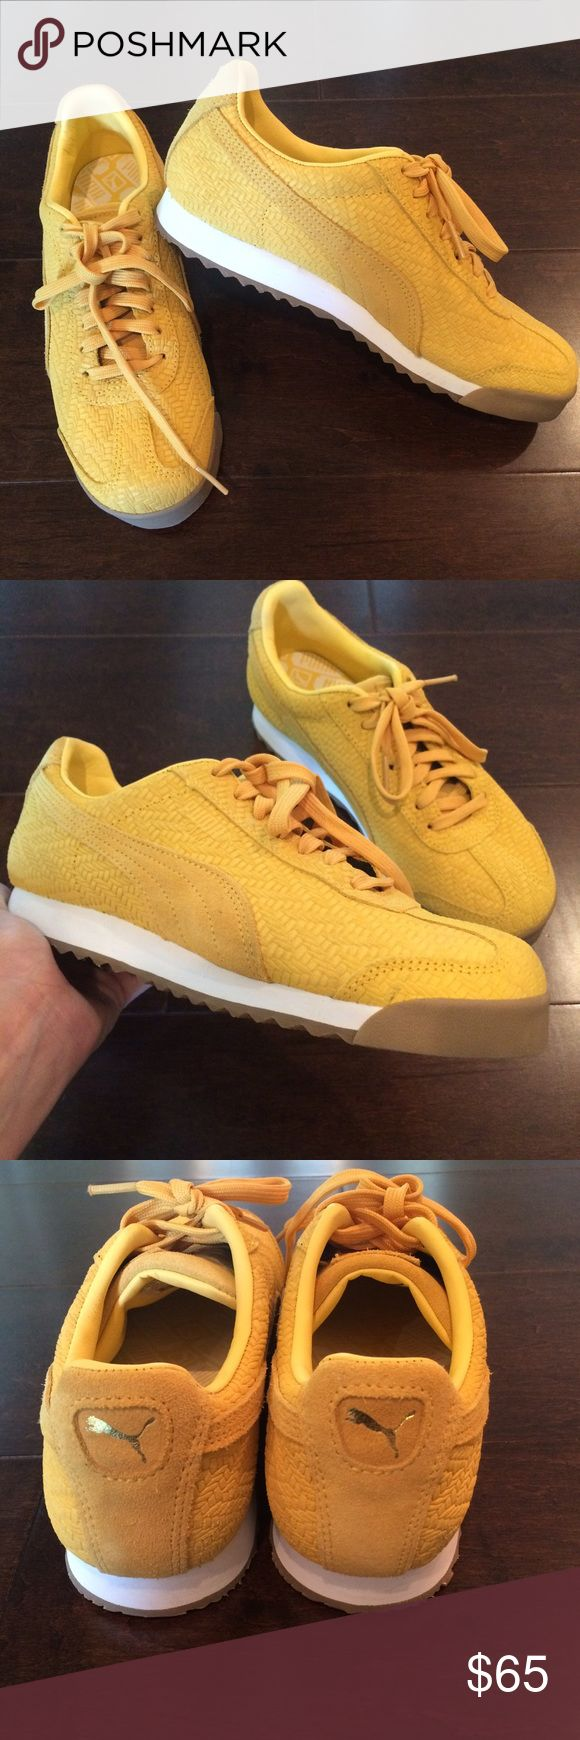 NWOT leather Pumas New without box, unworn! Mustard yellow leather puma casual shoes, faint mark on right shoe from storage. Genuine leather, rubber sole. Fits true to size. No trades. Puma Shoes Sneakers